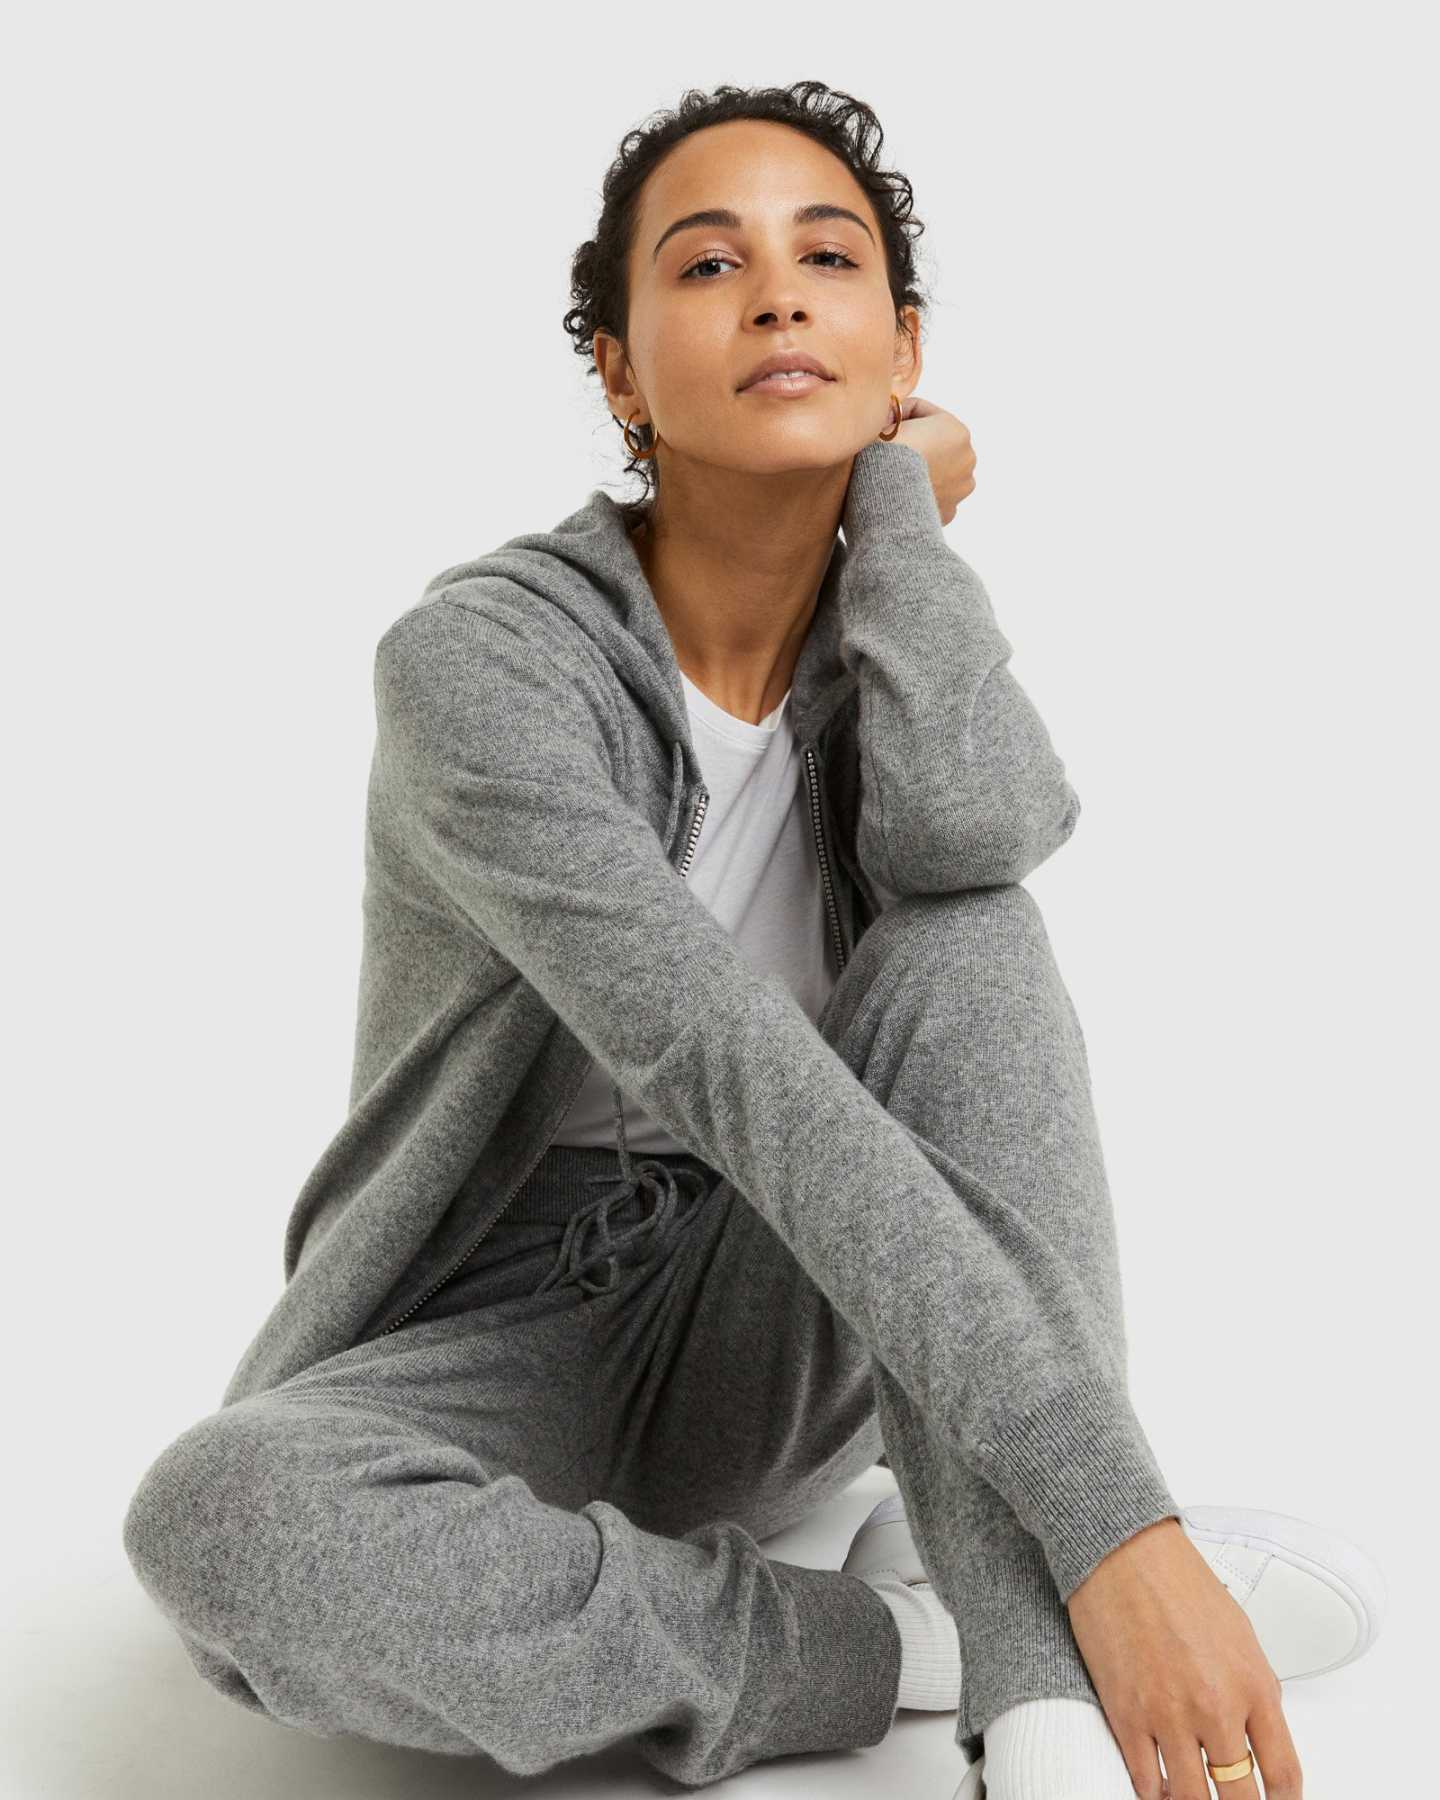 Woman wearing grey cashmere zip hoodie and matching cashmere sweatpants smiling at camera